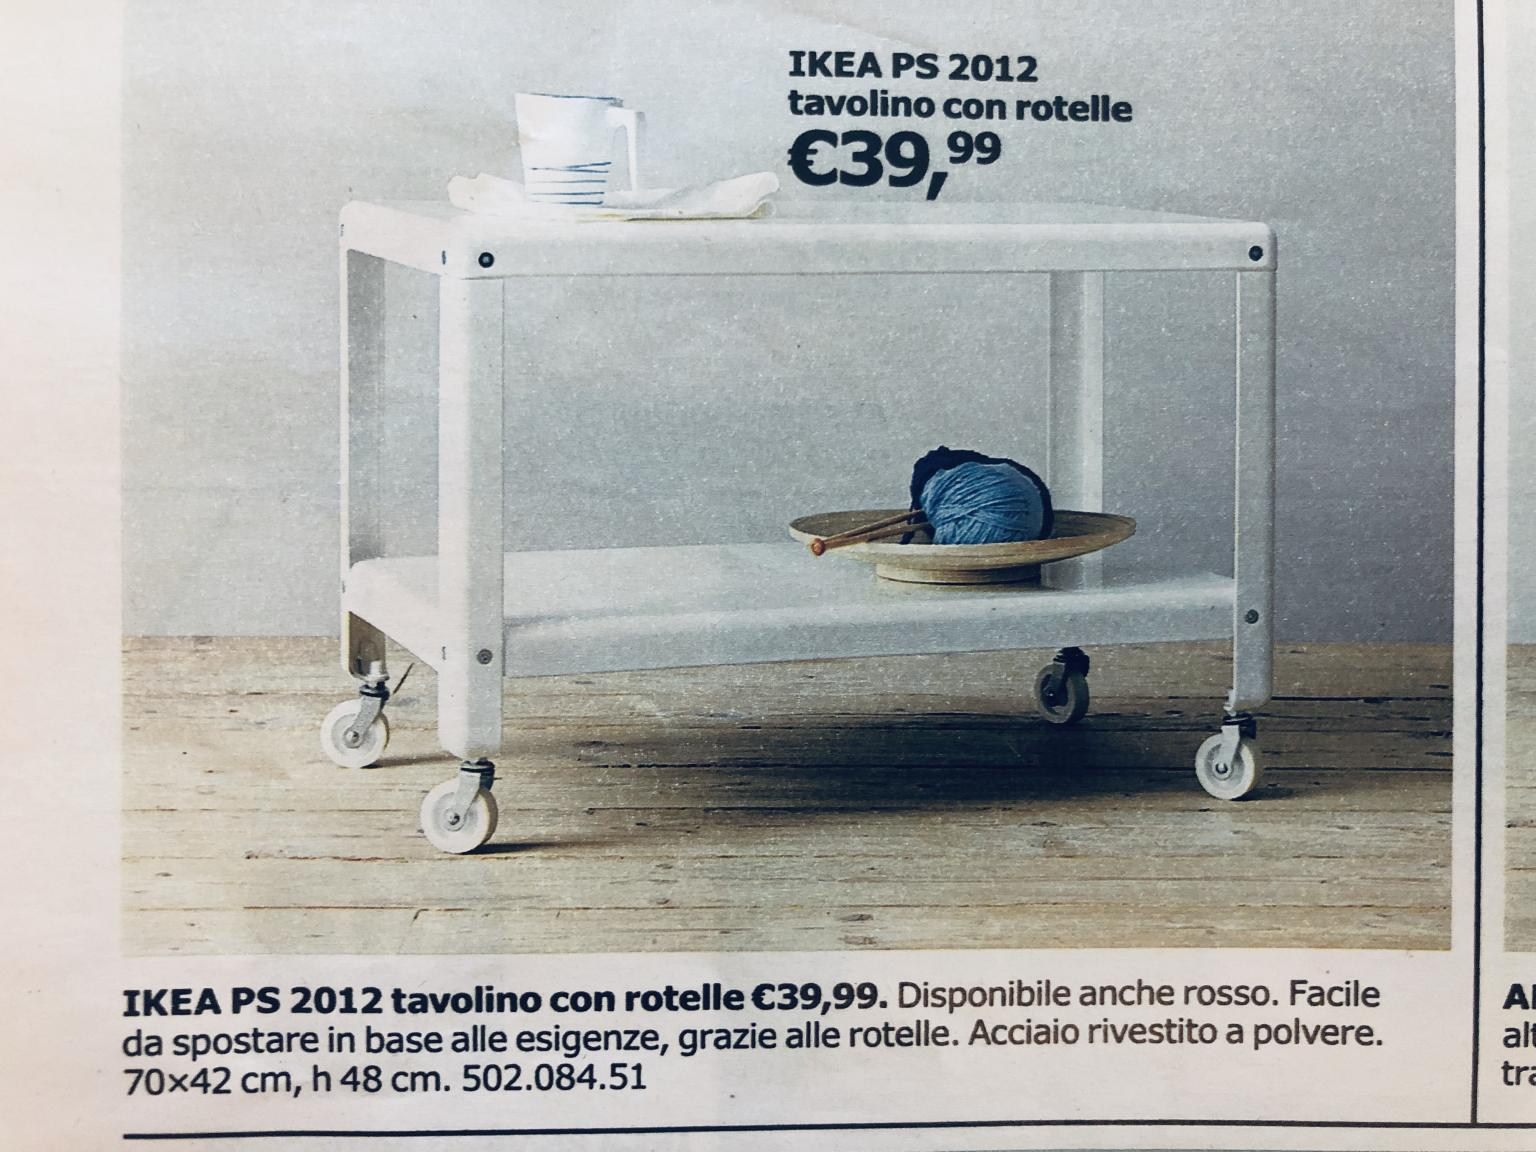 Tavolino Con Rotelle Ikea.Tavolino Con Rotelle Ikea In 20141 Milan For 20 00 For Sale Shpock